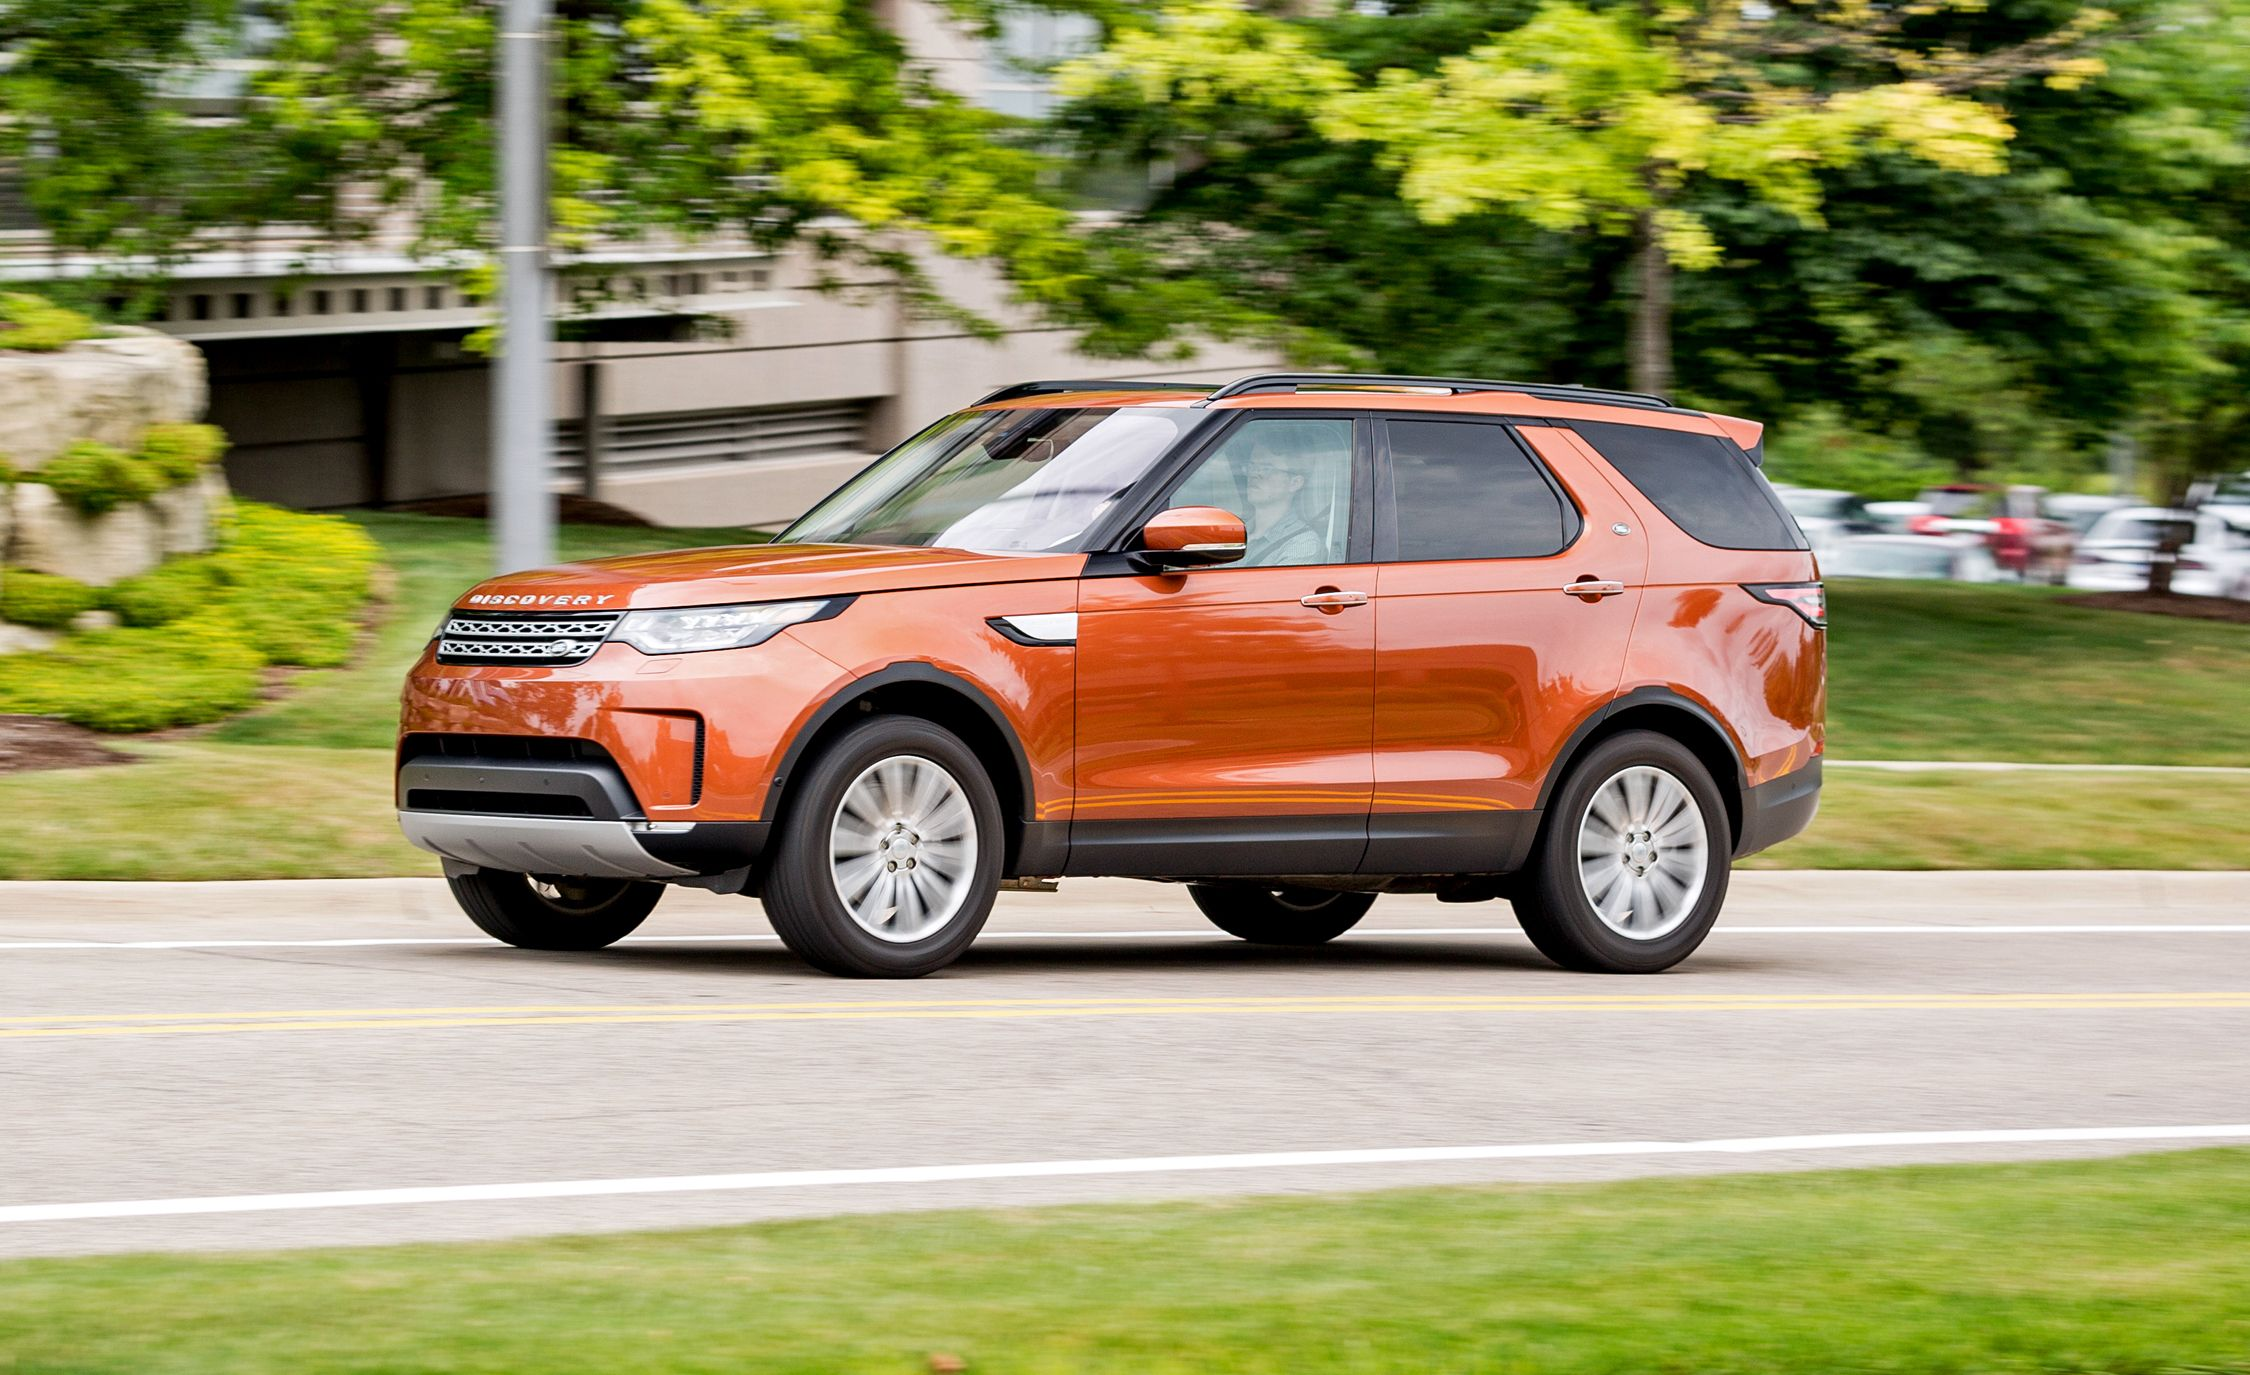 https://hips.hearstapps.com/amv-prod-cad-assets.s3.amazonaws.com/images/media/672263/2017-land-rover-discovery-in-depth-model-review-car-and-driver-photo-687974-s-original.jpg